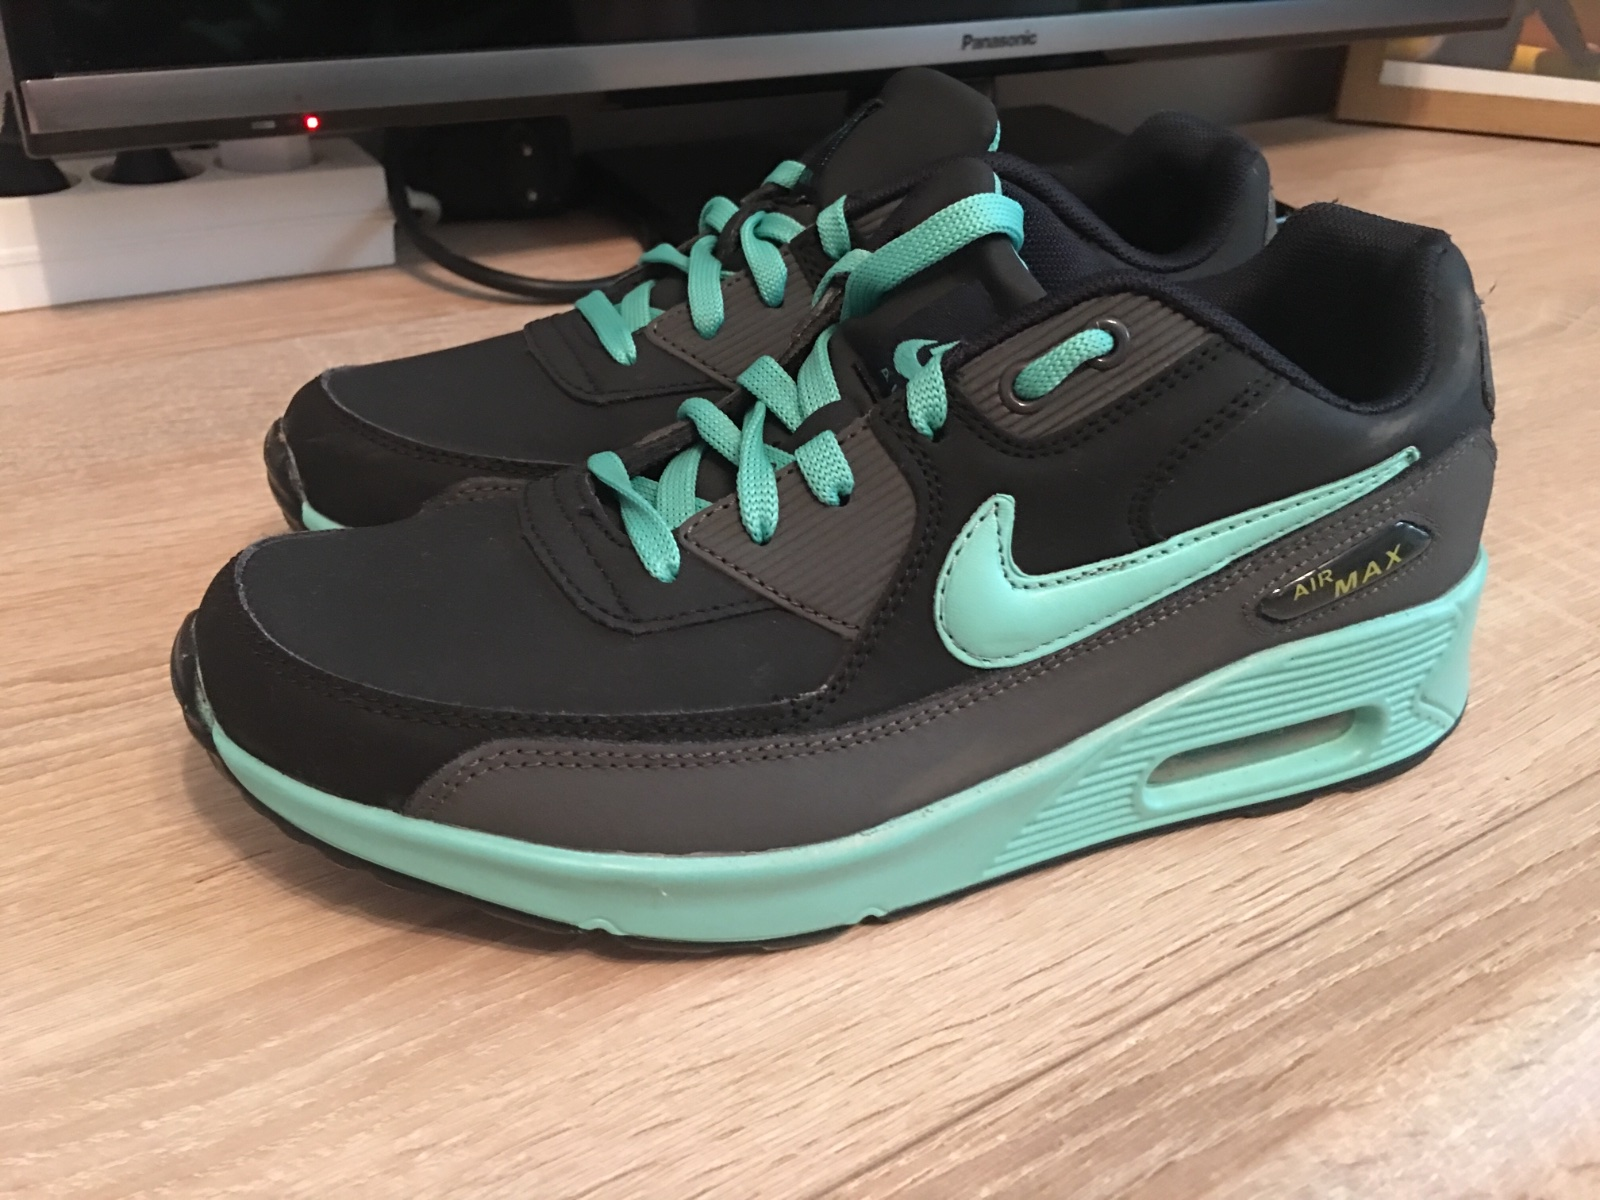 usa nike air max replika cena a7a3b acede